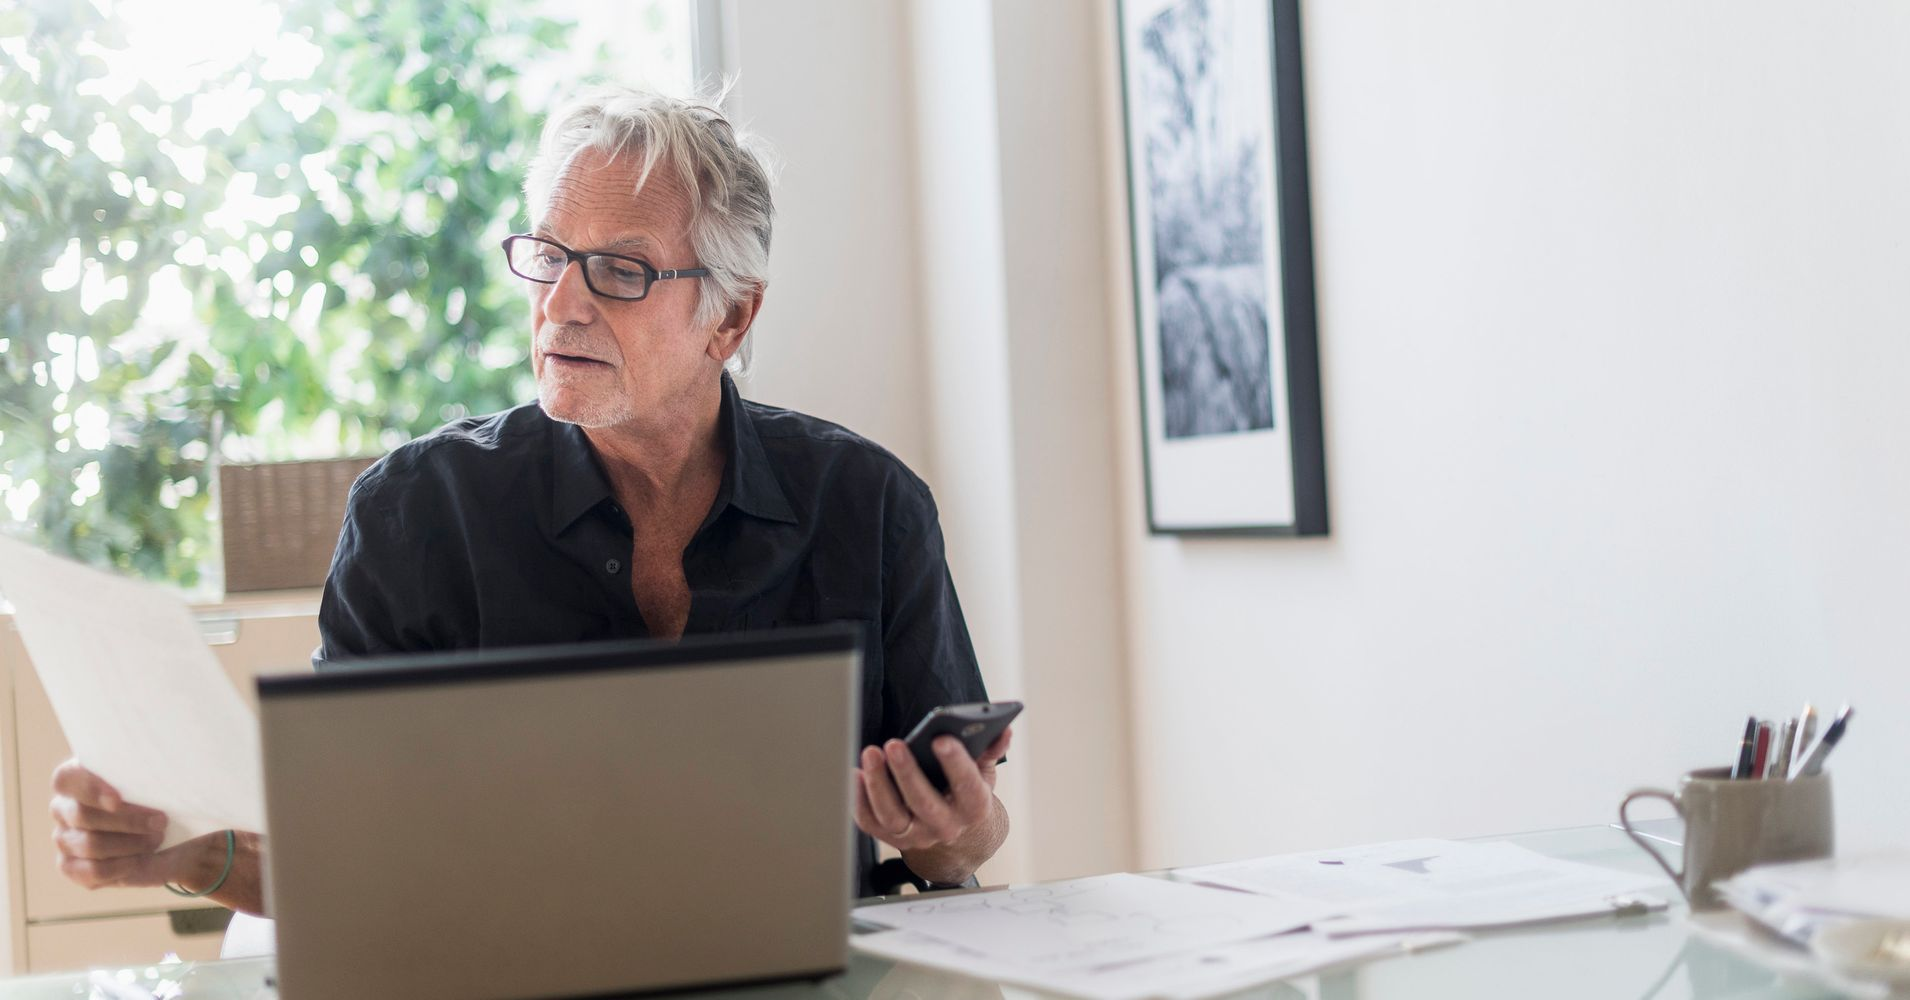 The 7 Steps To Starting Your Own Business After Age 50